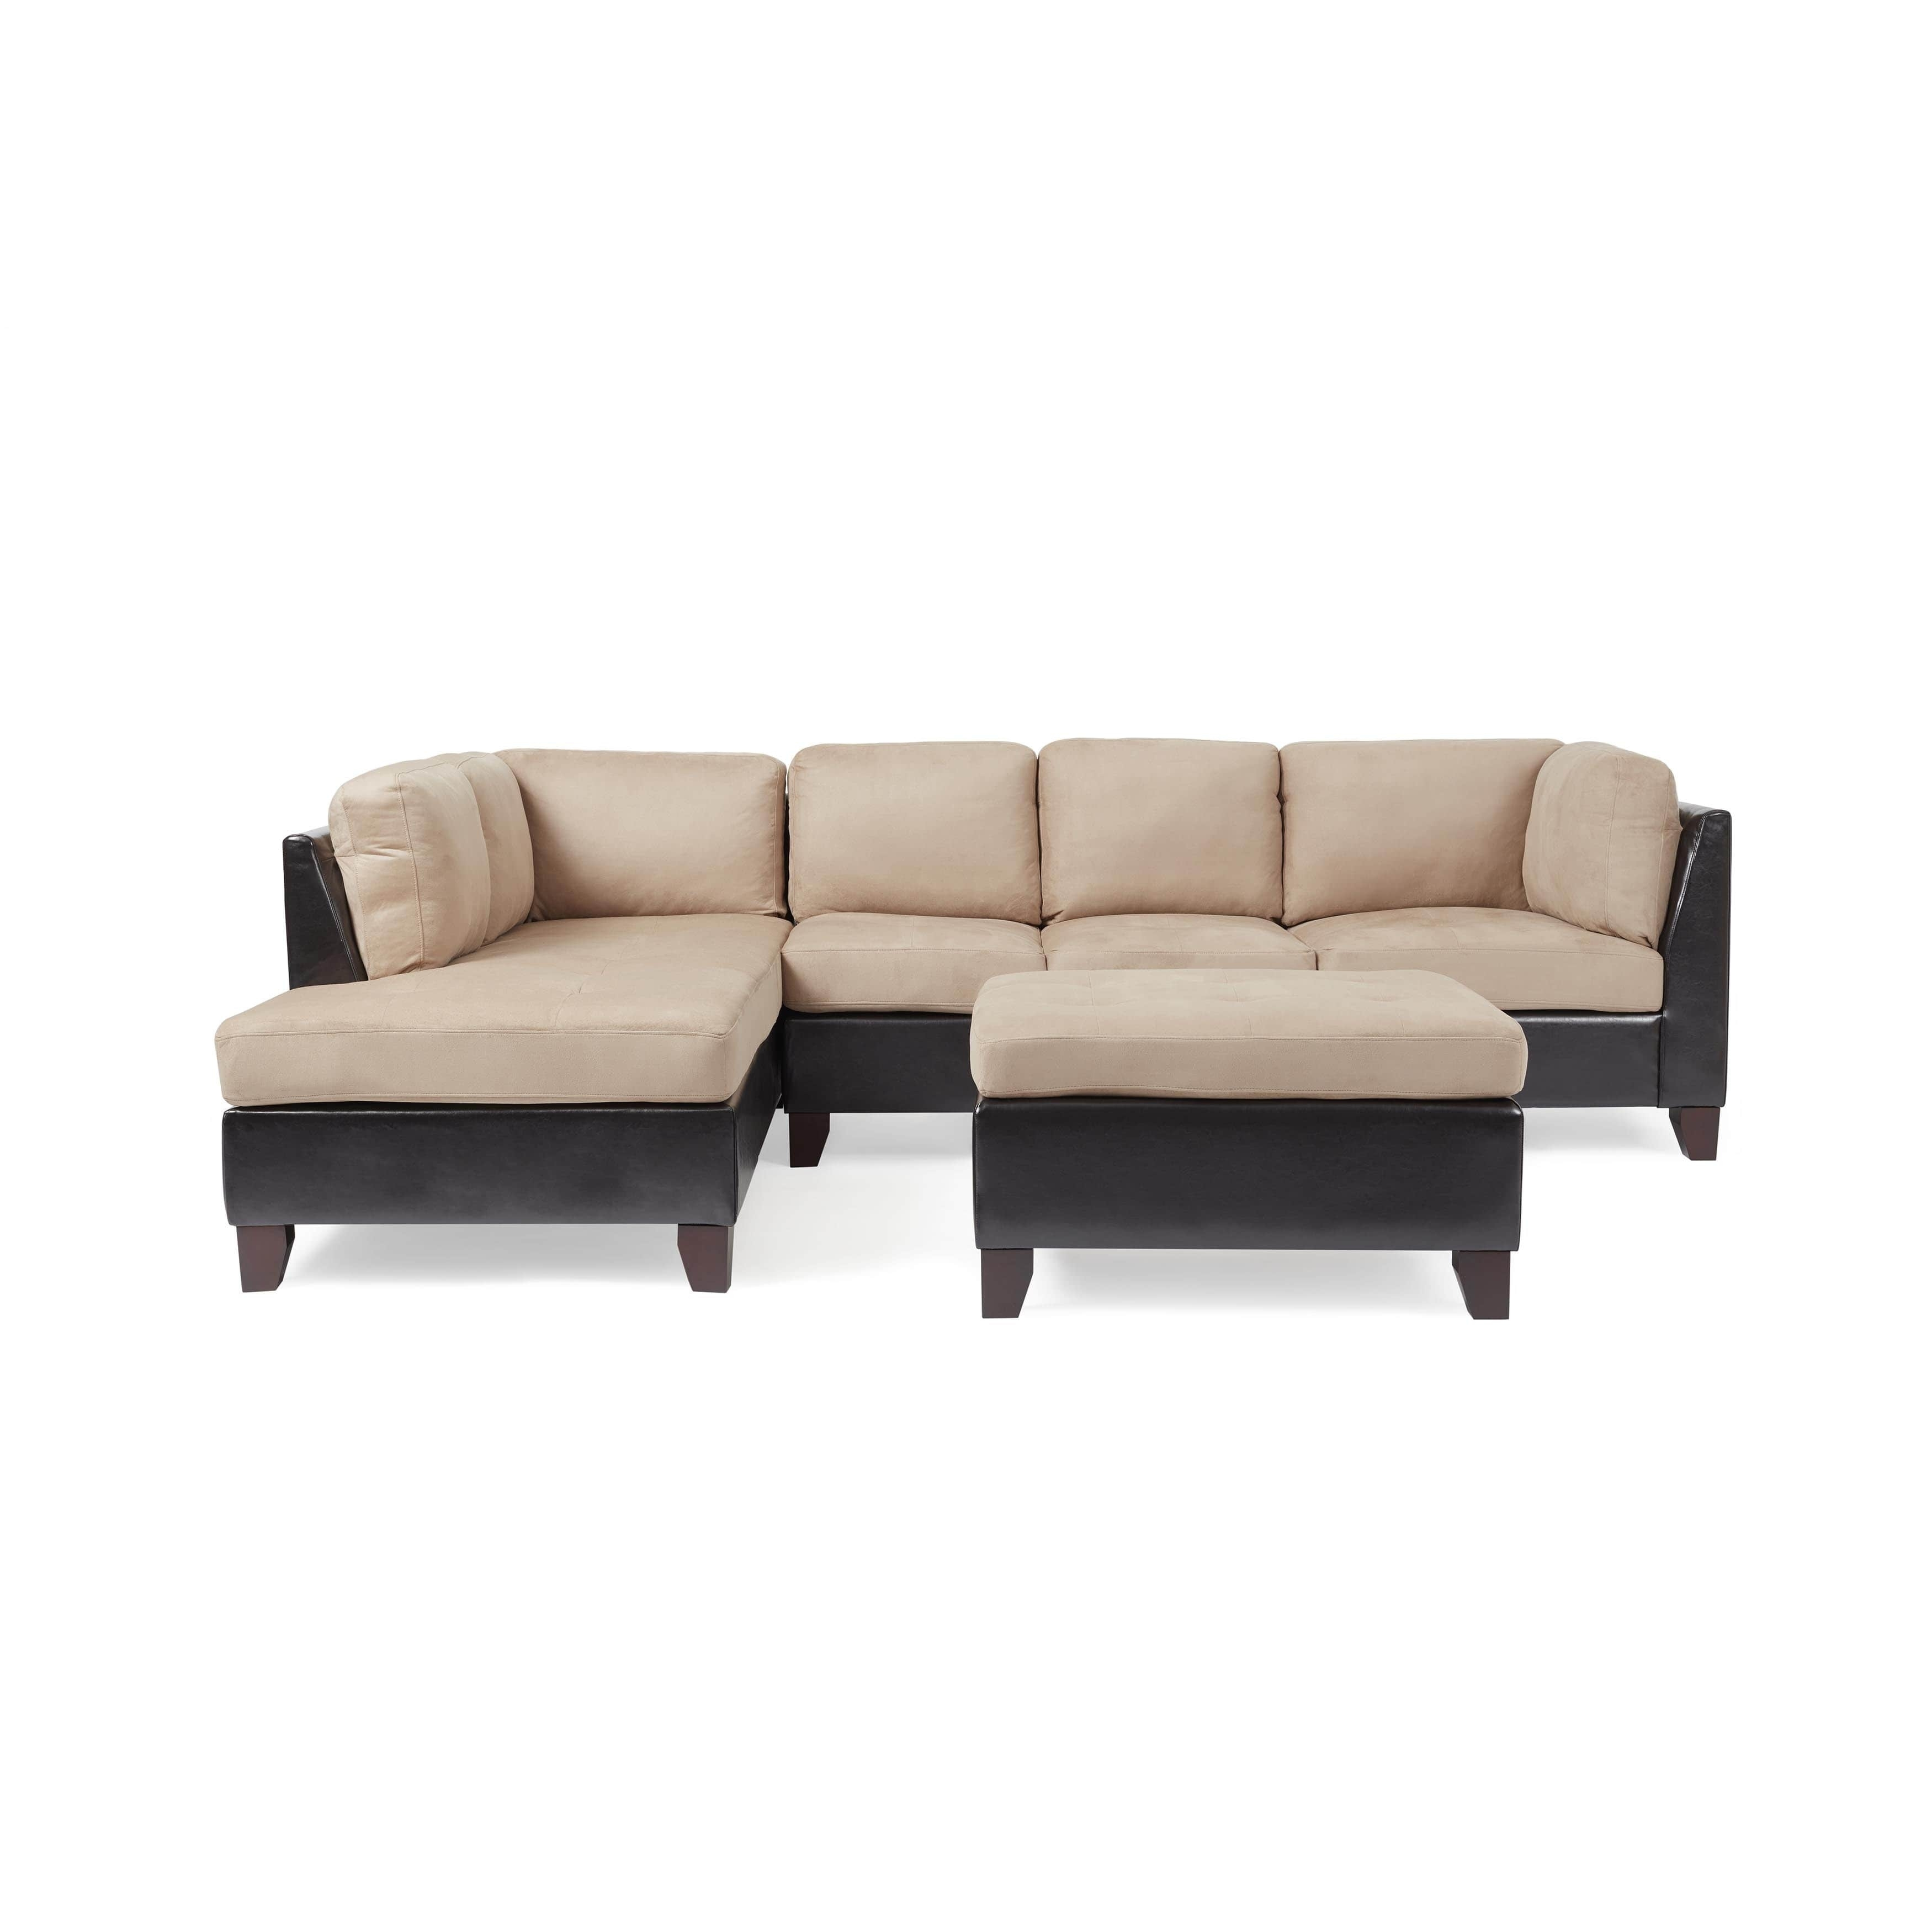 Abbyson Charlotte Beige Sectional Sofa And Ottoman - Free Shipping throughout Charlotte Sectional Sofas (Image 5 of 10)